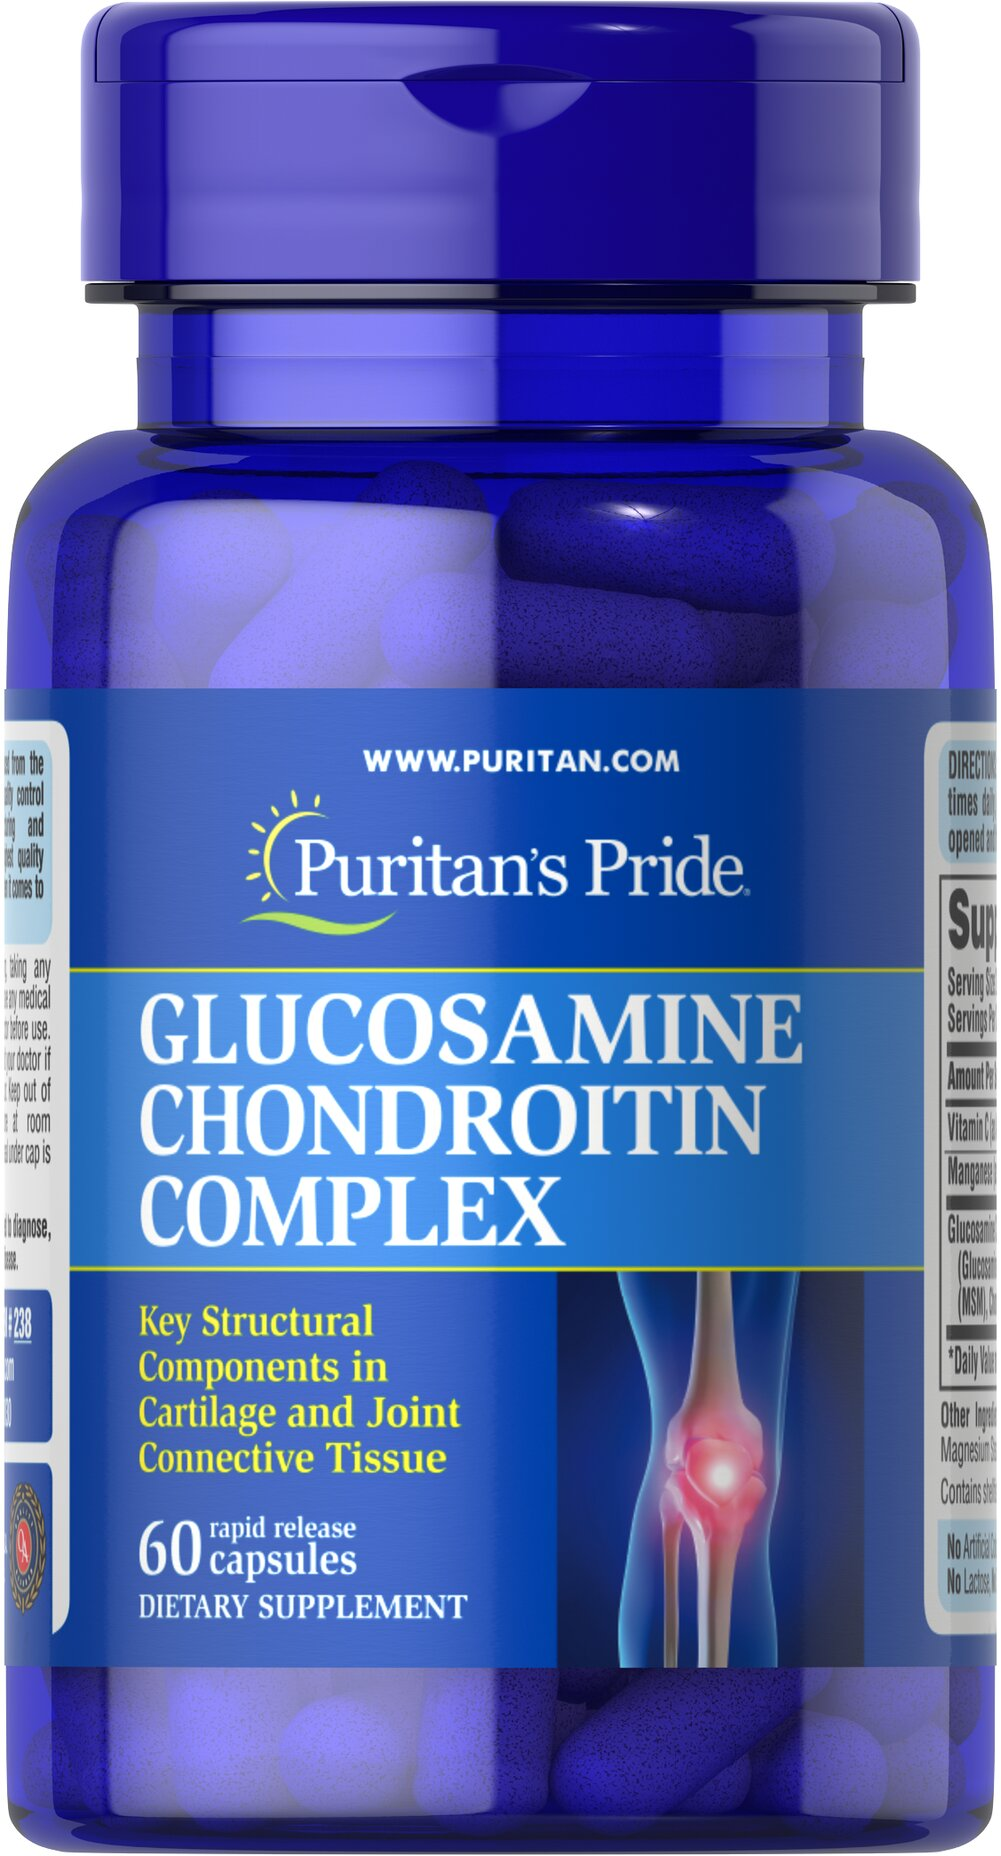 Glucosamine Chondroitin Complex 250 mg/200 mg <p><b>Glucosamine and Chondroitin Sulfate</b> are key structural components in cartilage and play an important role in the maintenance of joint cartilage.** This formulation promotes mobility and flexibility for comfortable joint movement by delivering 500 mg Glucosamine Sulfate and 400 mg Chondroitin; additional ingredients include Vitamin C and Manganese. Adults can take two capsules three times daily with a meal.</p> 60 Cap